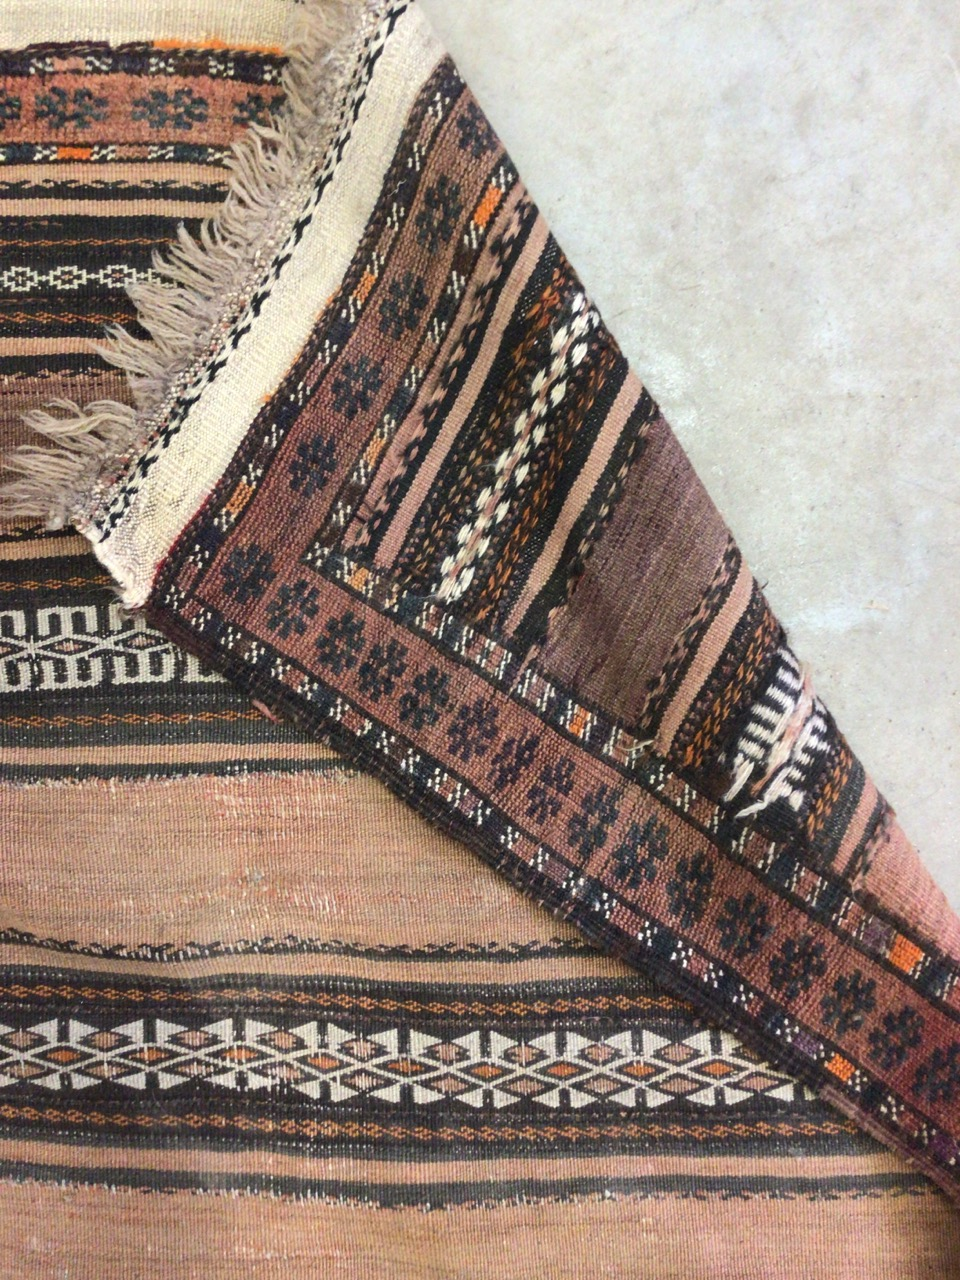 An antique eastern runner with Aztec influence. W:290cm x H:105cm - Image 4 of 4